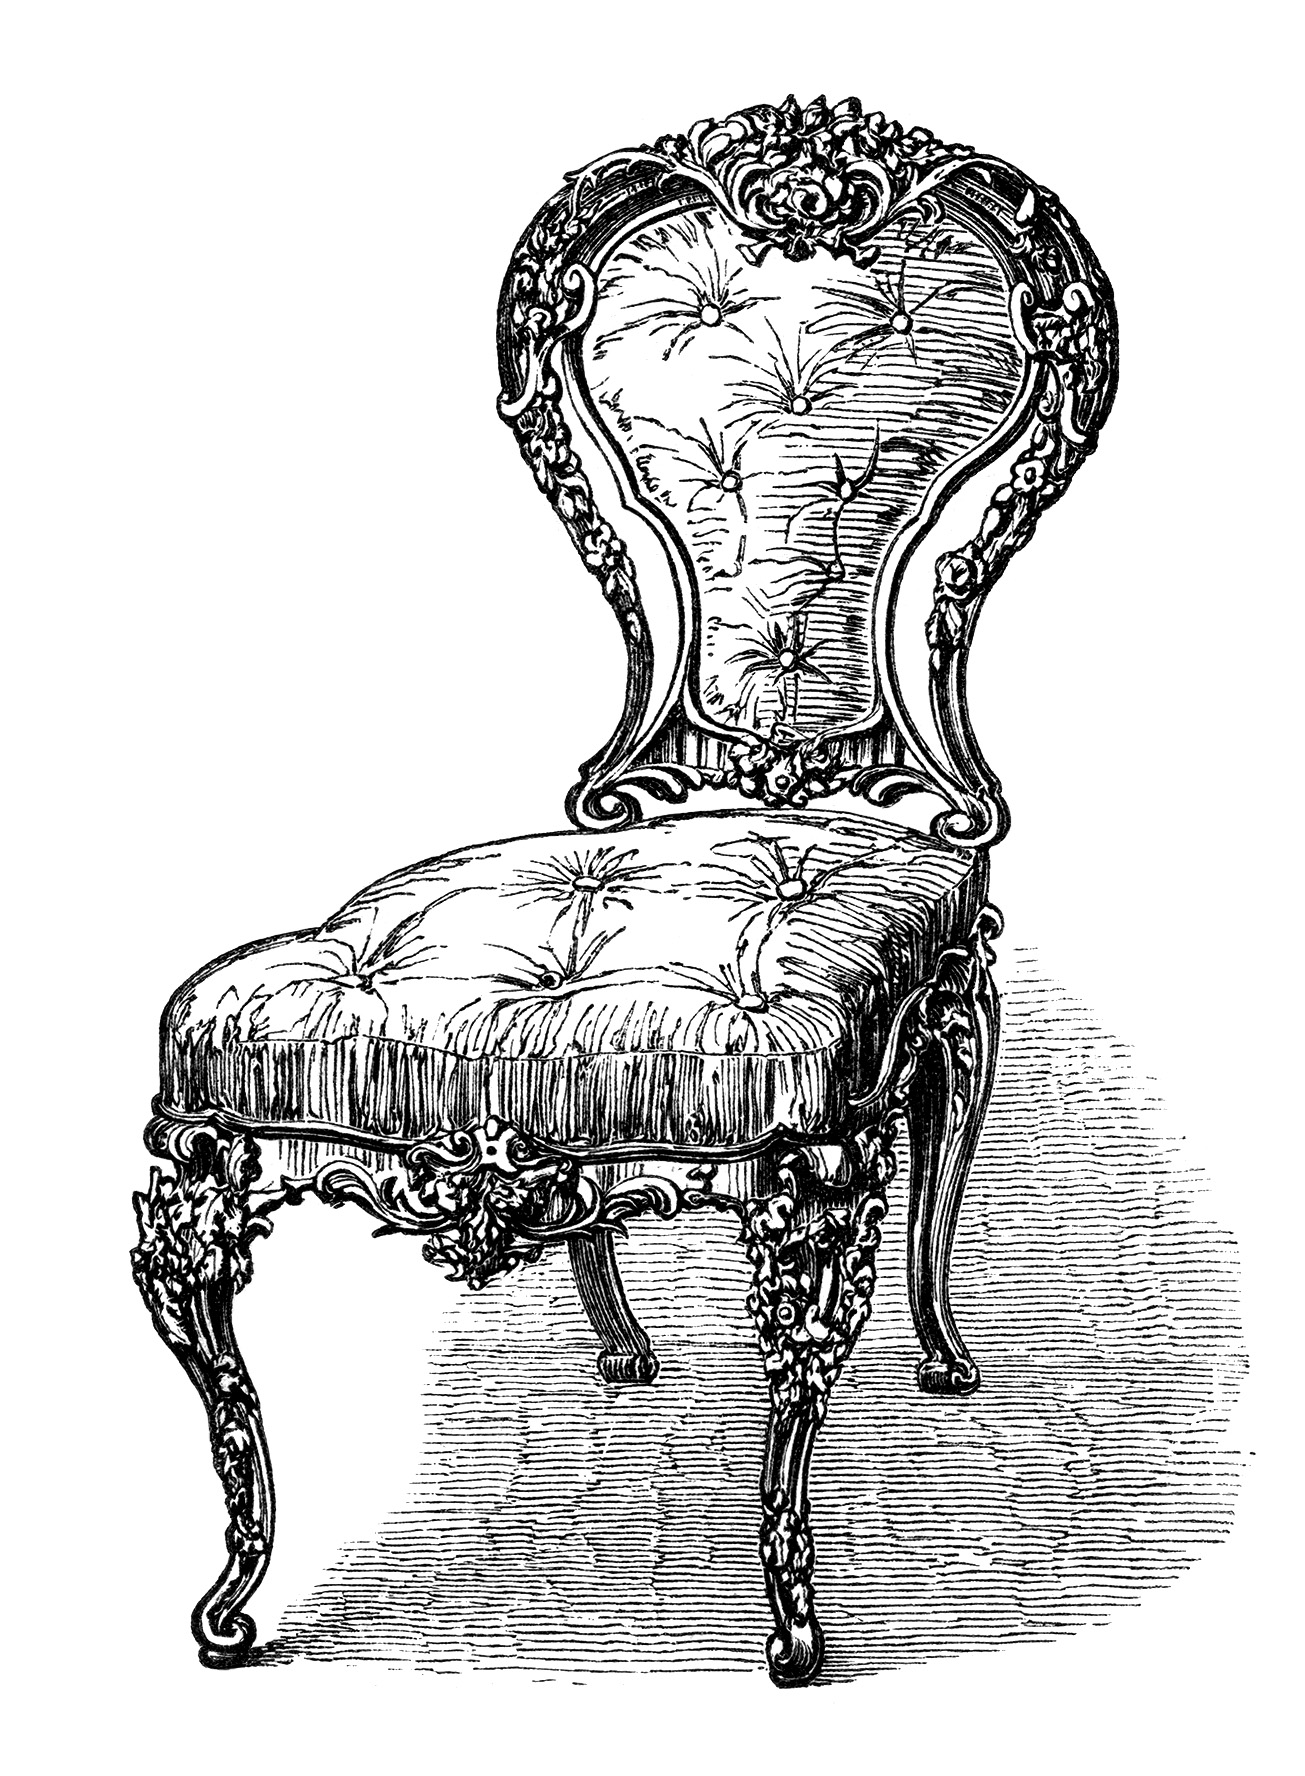 Ordinaire ... Vintage Chair Clip Art, Black And White Clipart, Antique Chair  Engraving, Old Fashioned ...